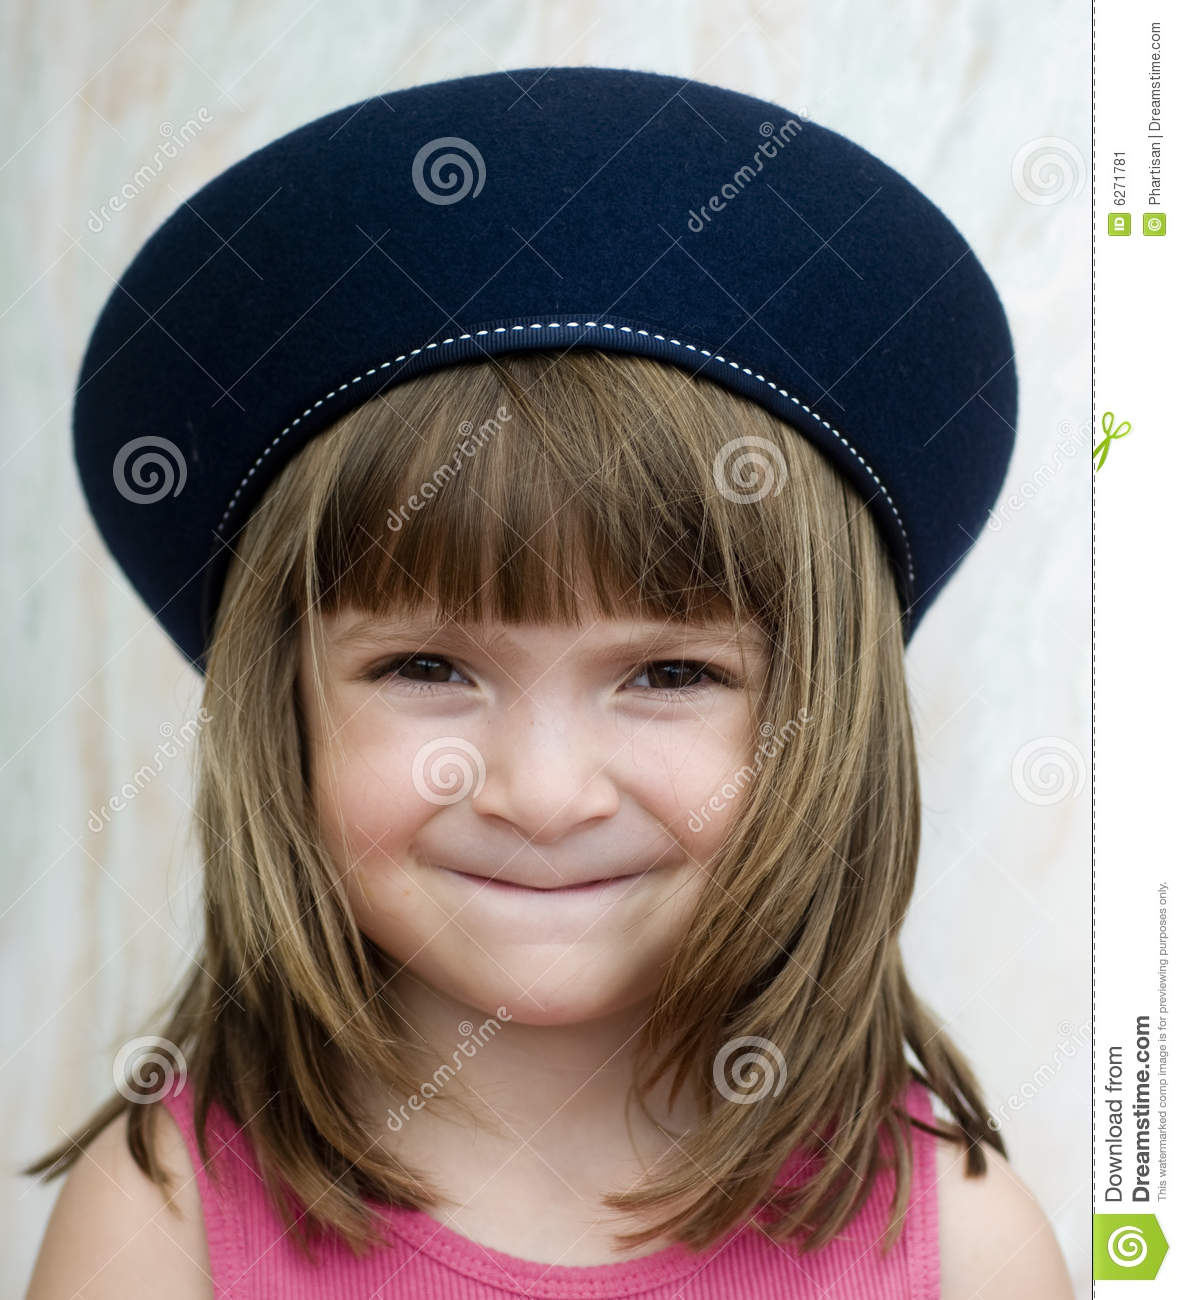 259b76cc572 Young Child Wearing French Beret Hat Stock Image - Image of pose ...